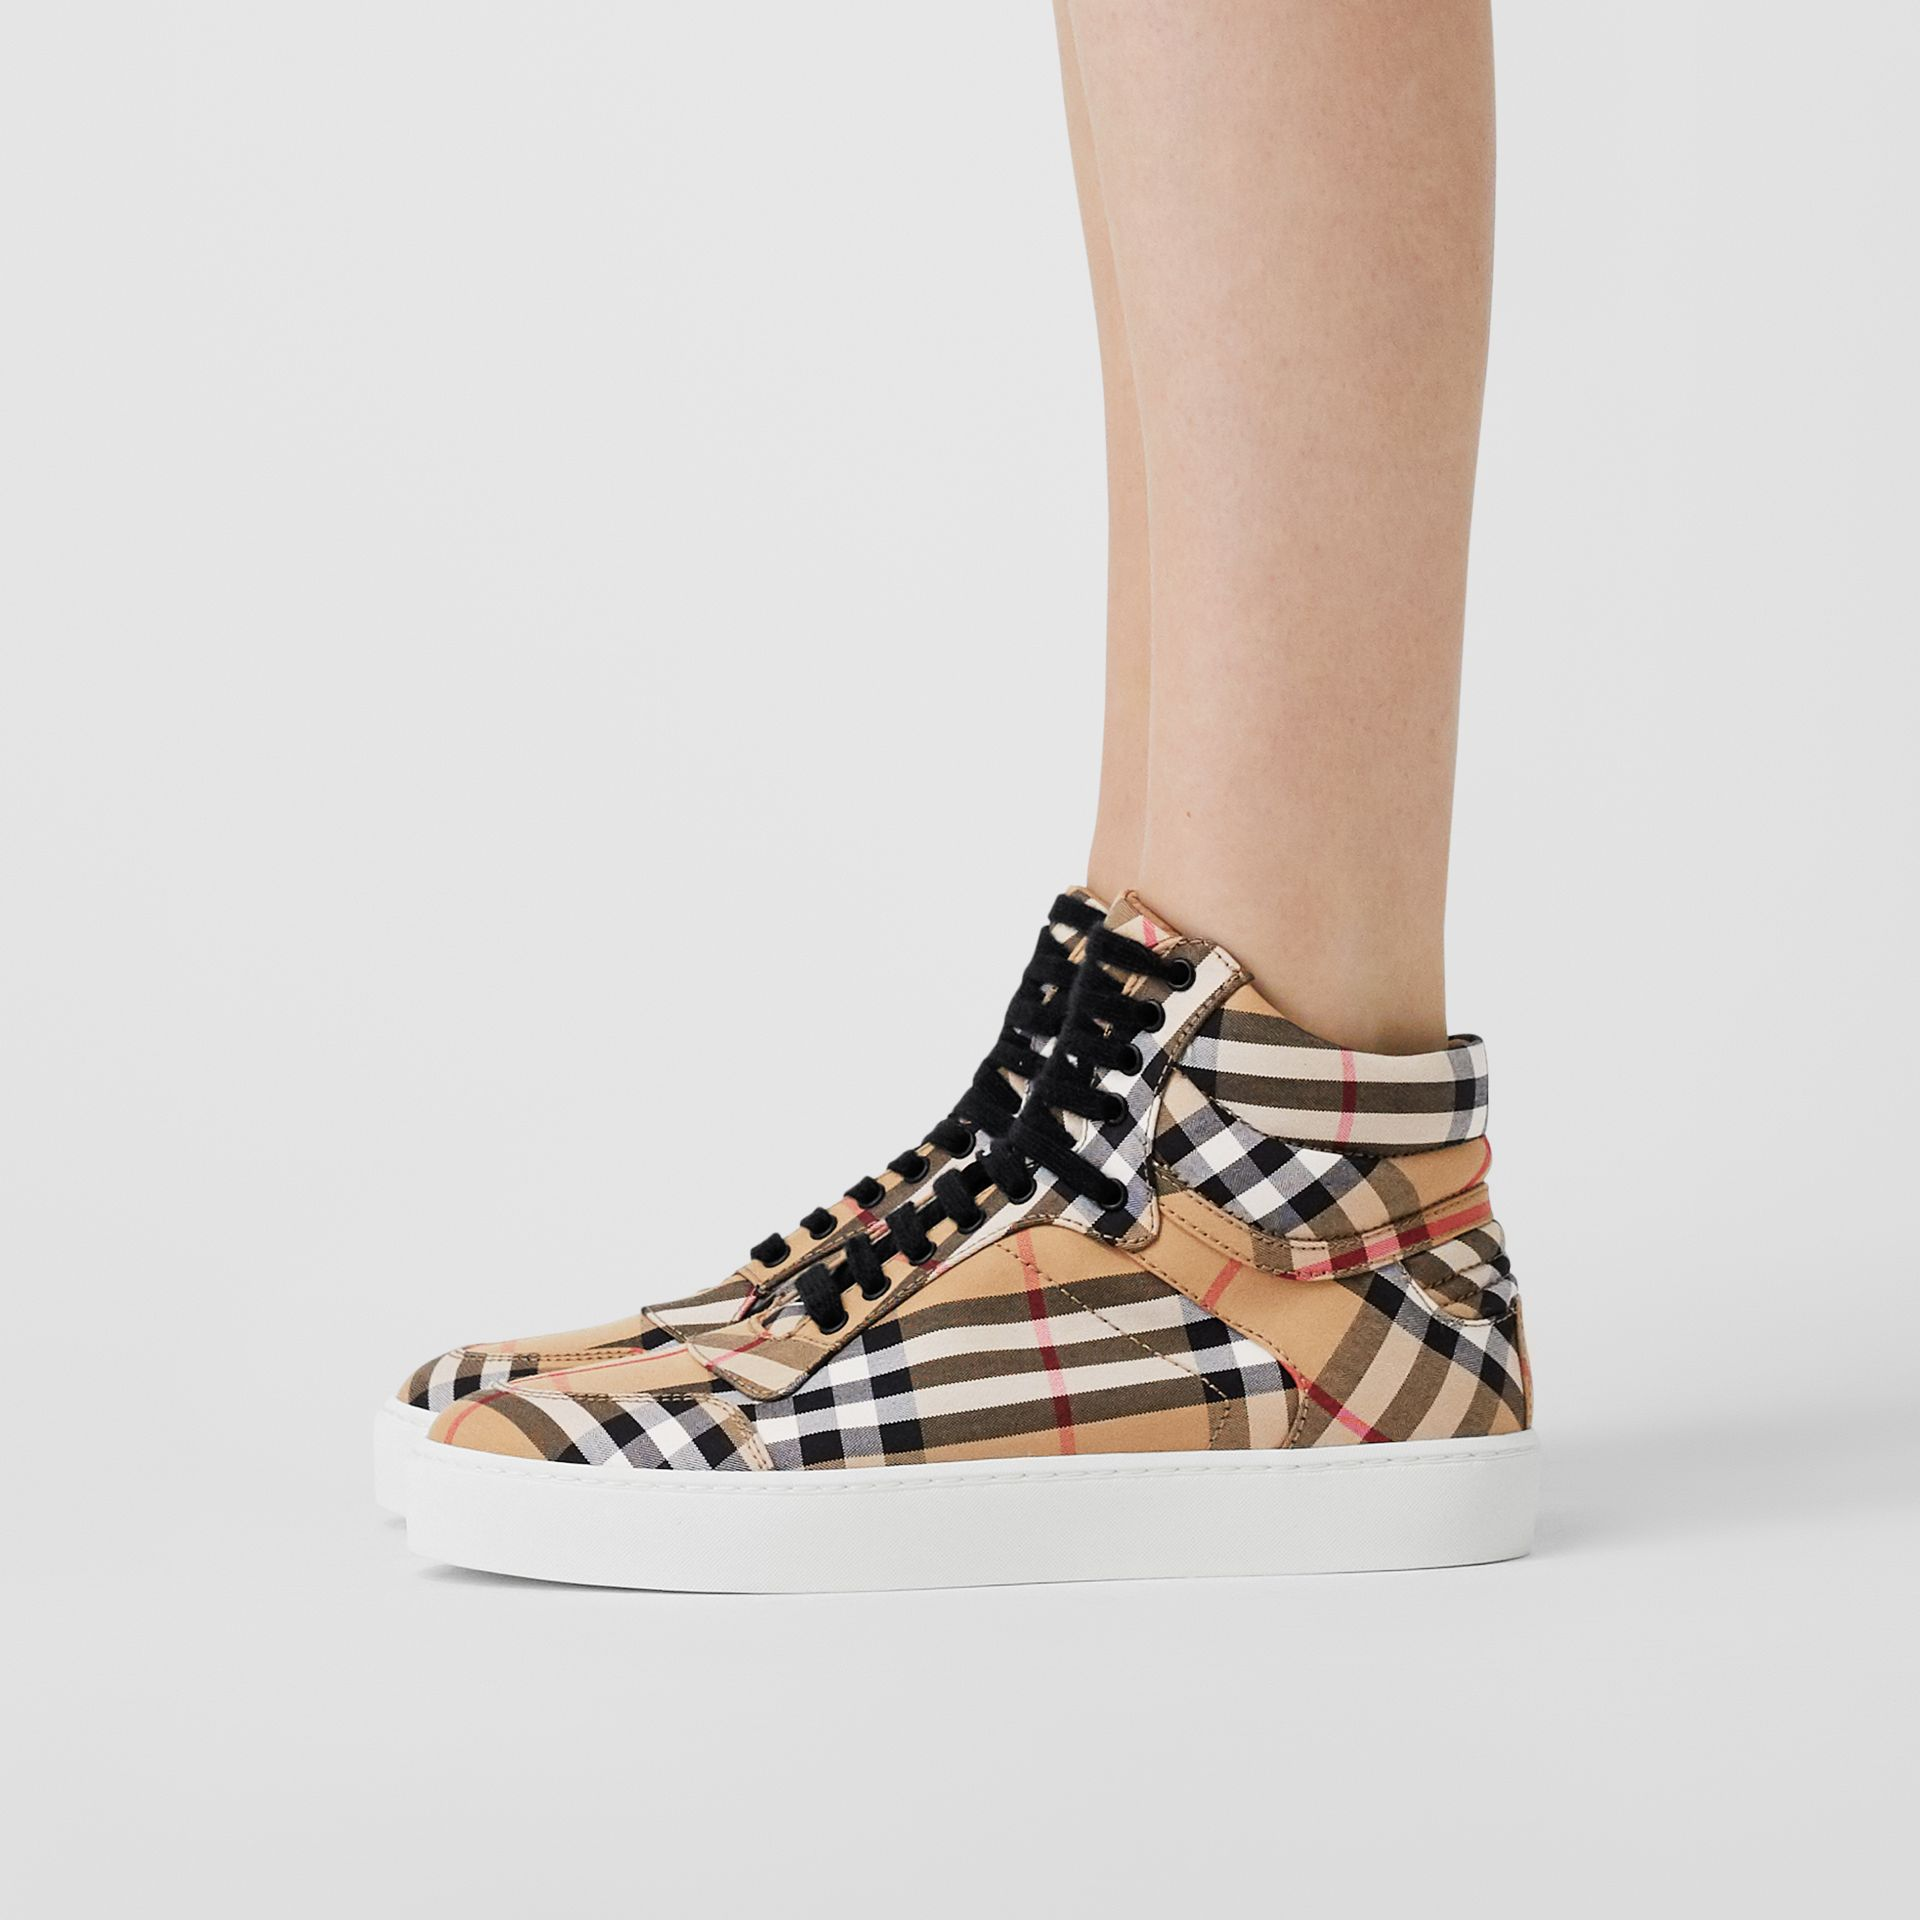 Vintage Check Cotton High-top Sneakers in Antique Yellow - Women | Burberry Singapore - gallery image 2